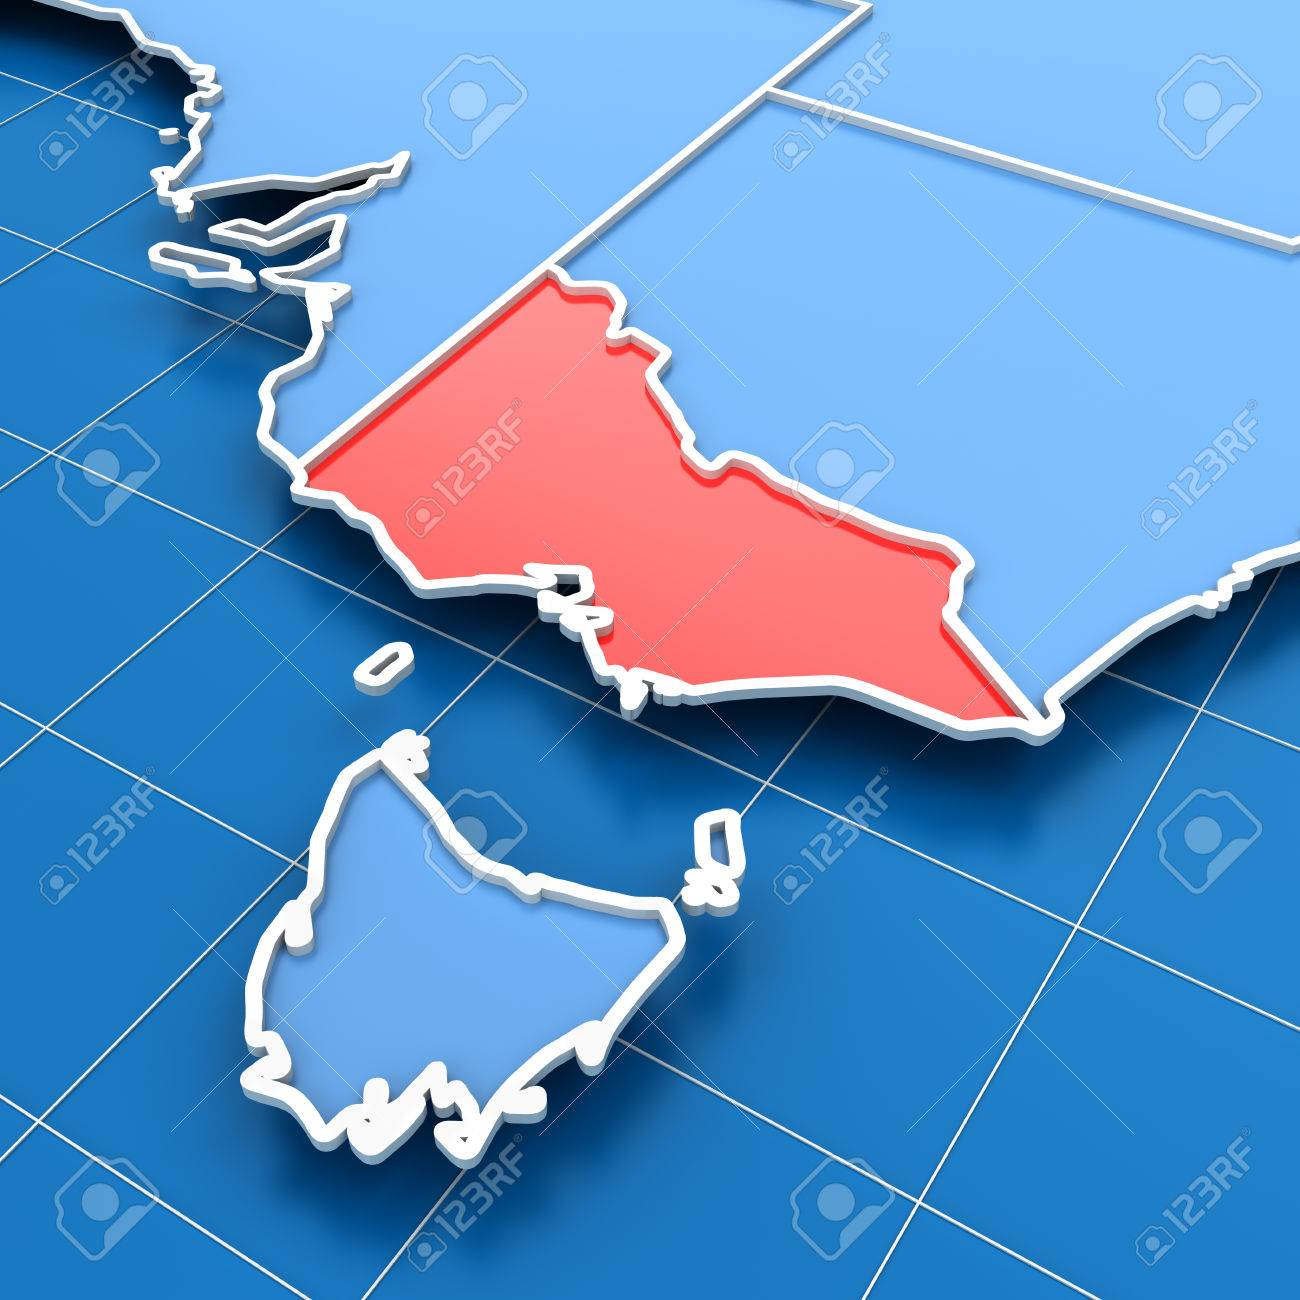 3d Render Of Australia Map With Victoria State Highlighted – Victoria Australia Map